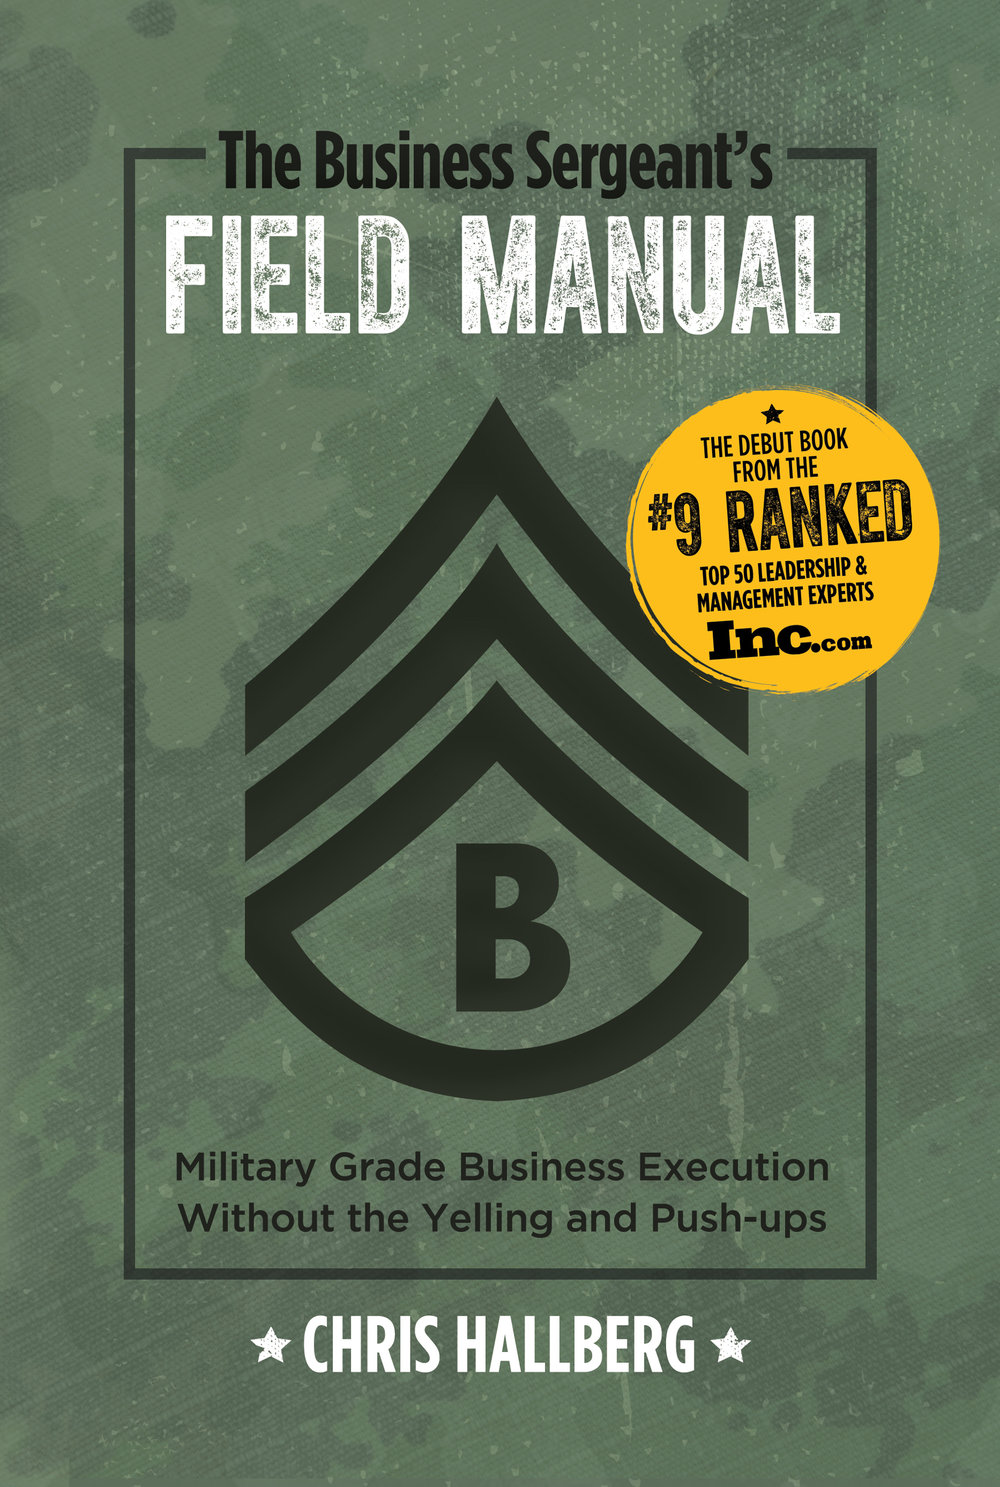 BUY THE BUSINESS SERGEANT'S FIELD MANUAL TODAY! - No one is more professional than I. I am a Business Sergeant, a leader of people. As a Business Sergeant I am proud of my team and will at all times conduct myself so as to bring credit upon them, regardless of the situation in which I nd myself. I will not use my position to modify or skirt the agreed upon rules. I follow the same rules as everyone else.I as a leader, I set the standard for others to follow.BUY E-BOOK NOW